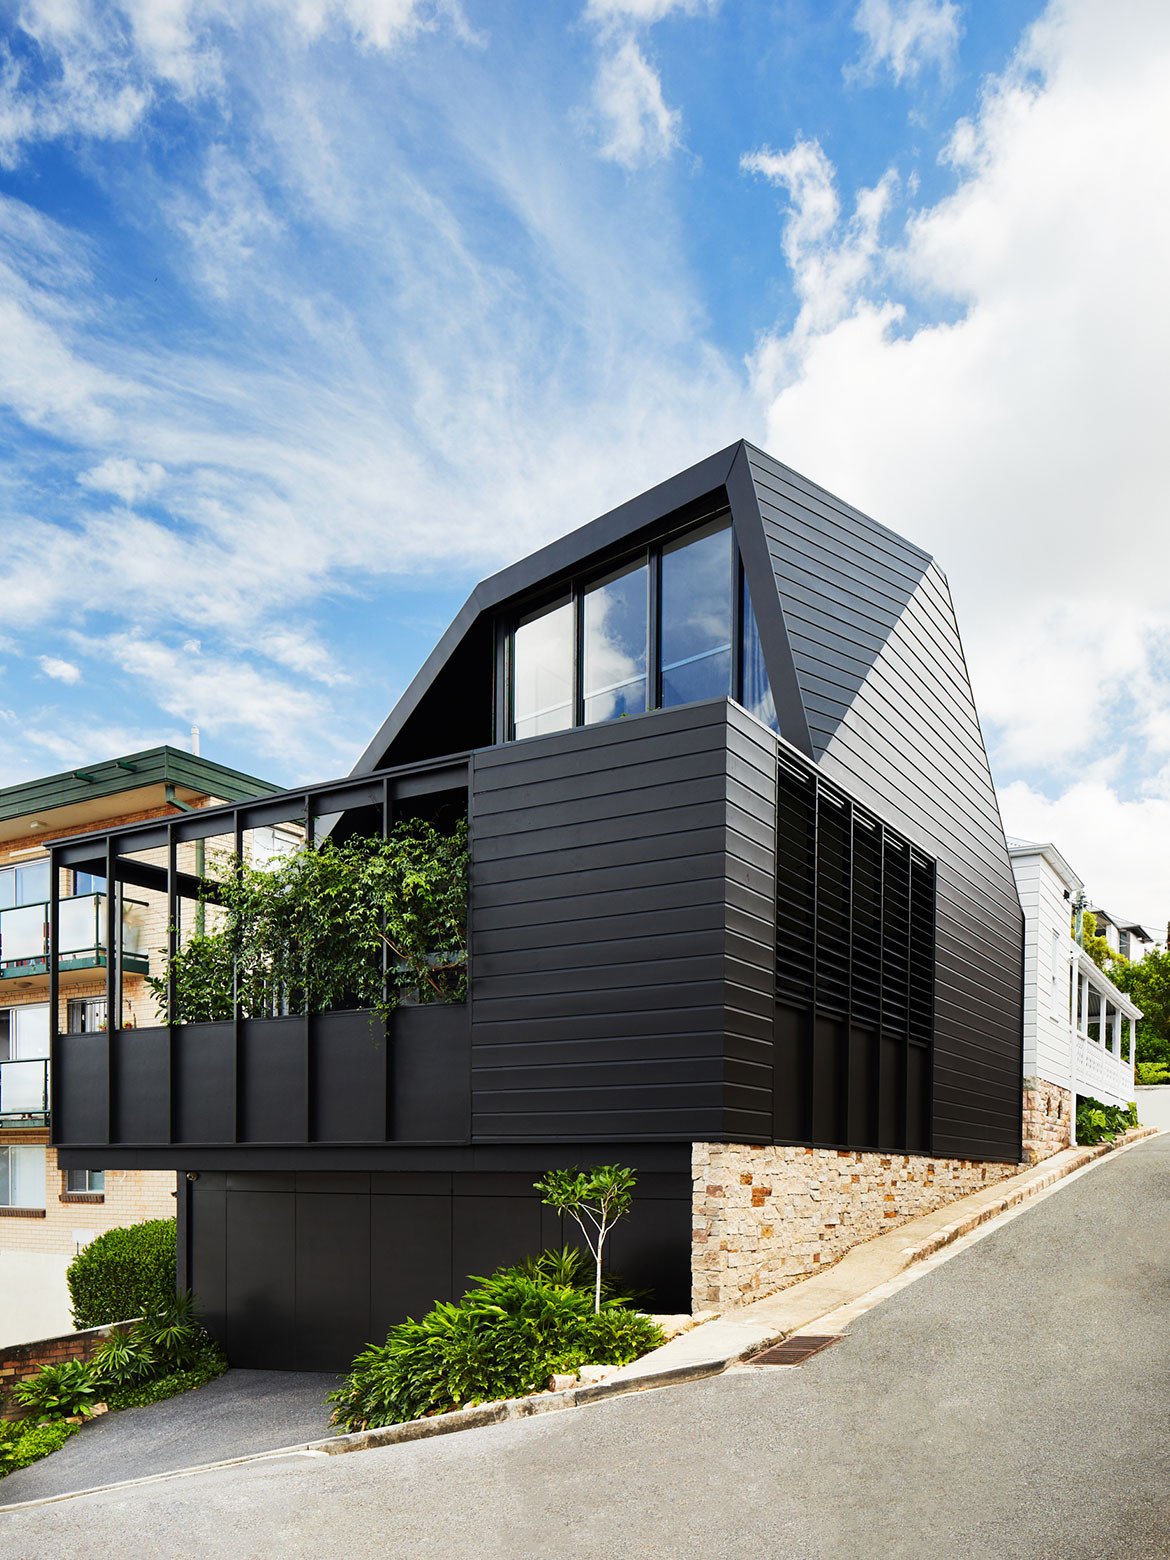 Albert Villa by Bureau Proberts is a contemporary garden pavilion addition to a classic Queenslander workers cottage